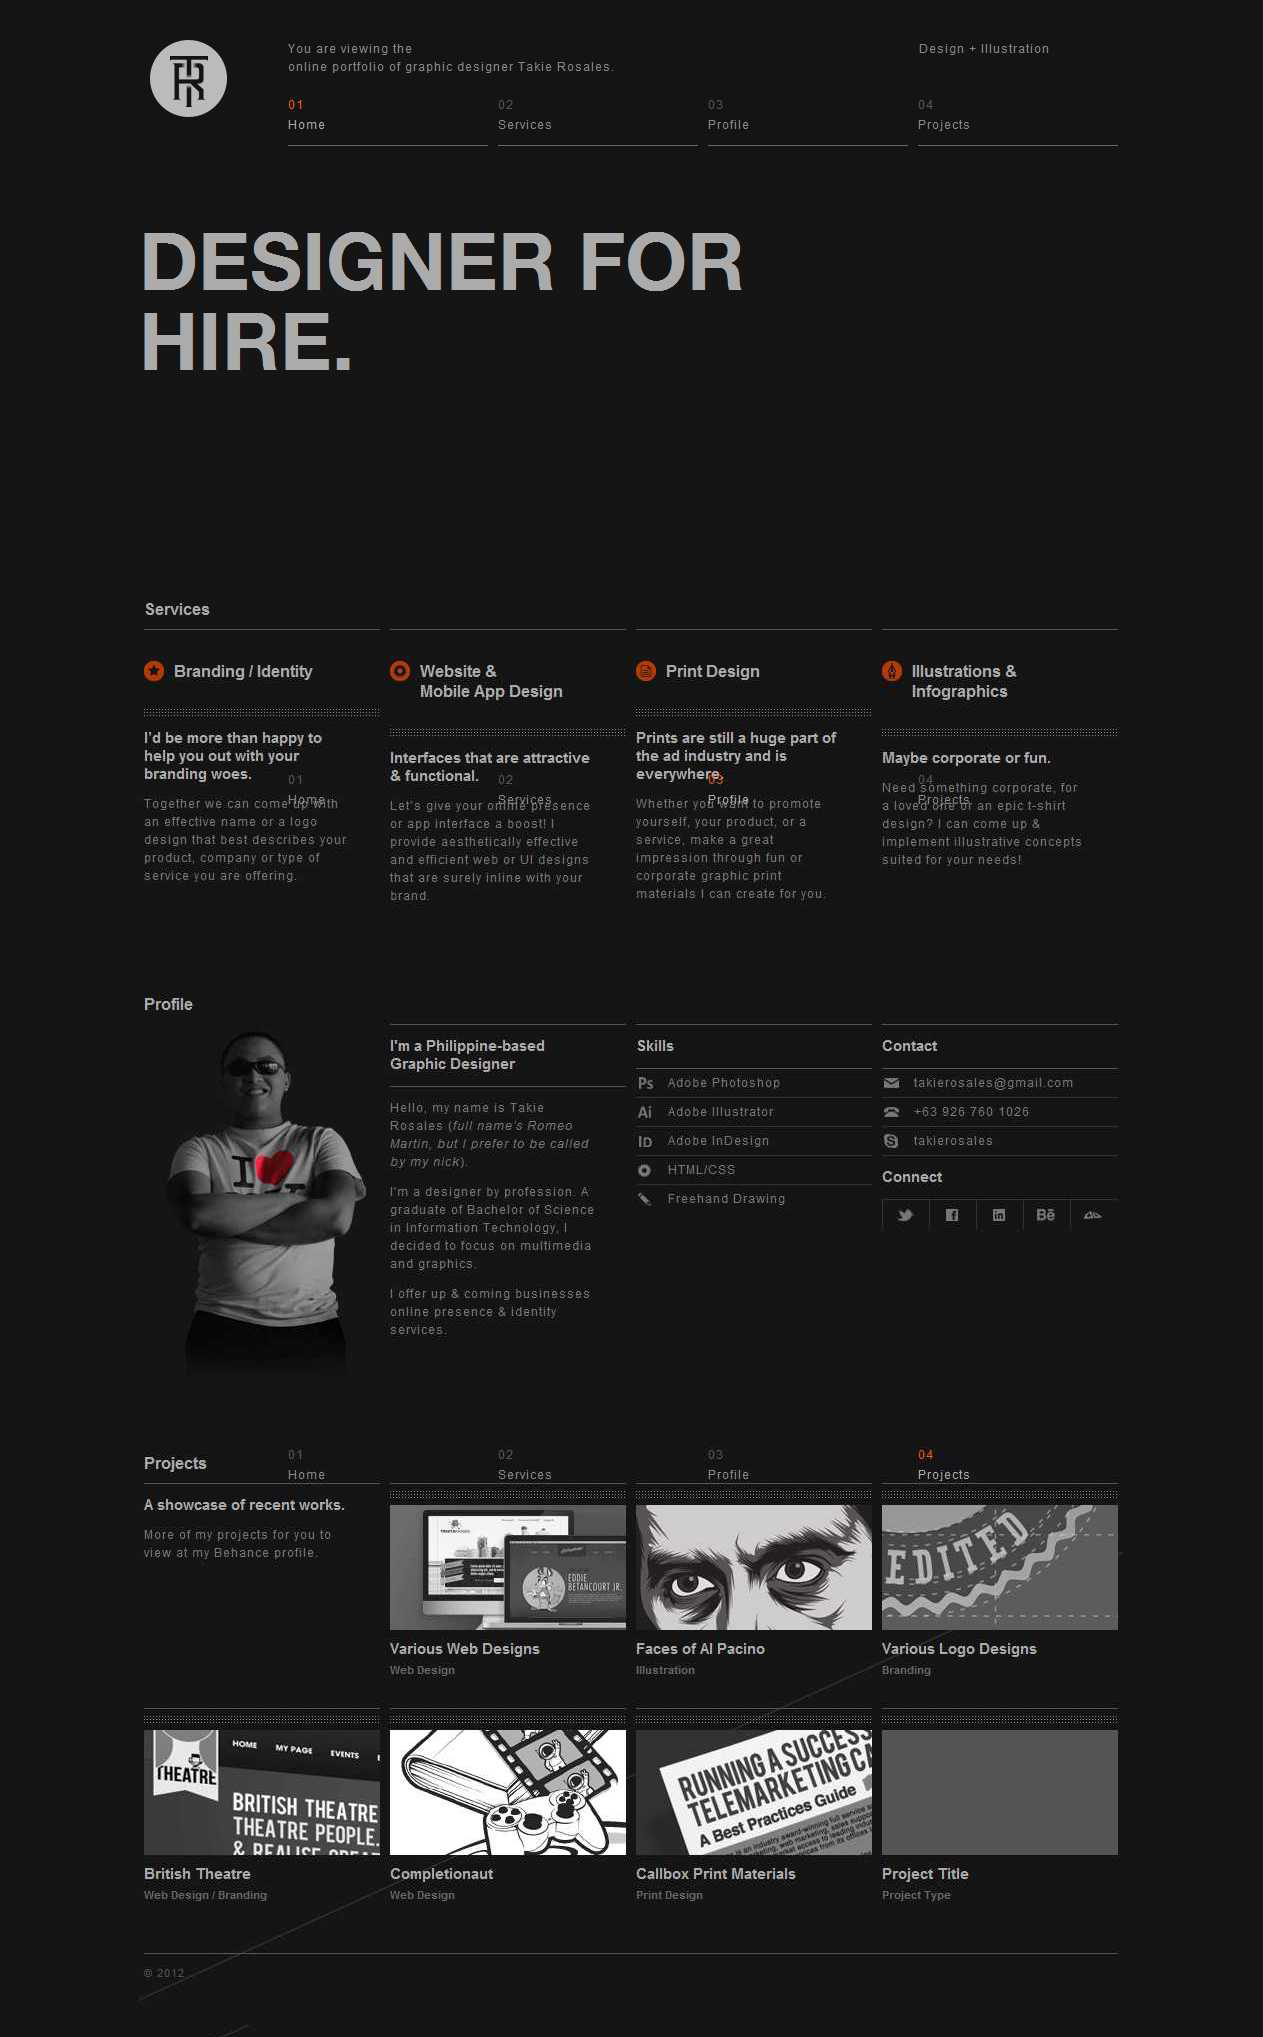 Takie Rosales Website Screenshot